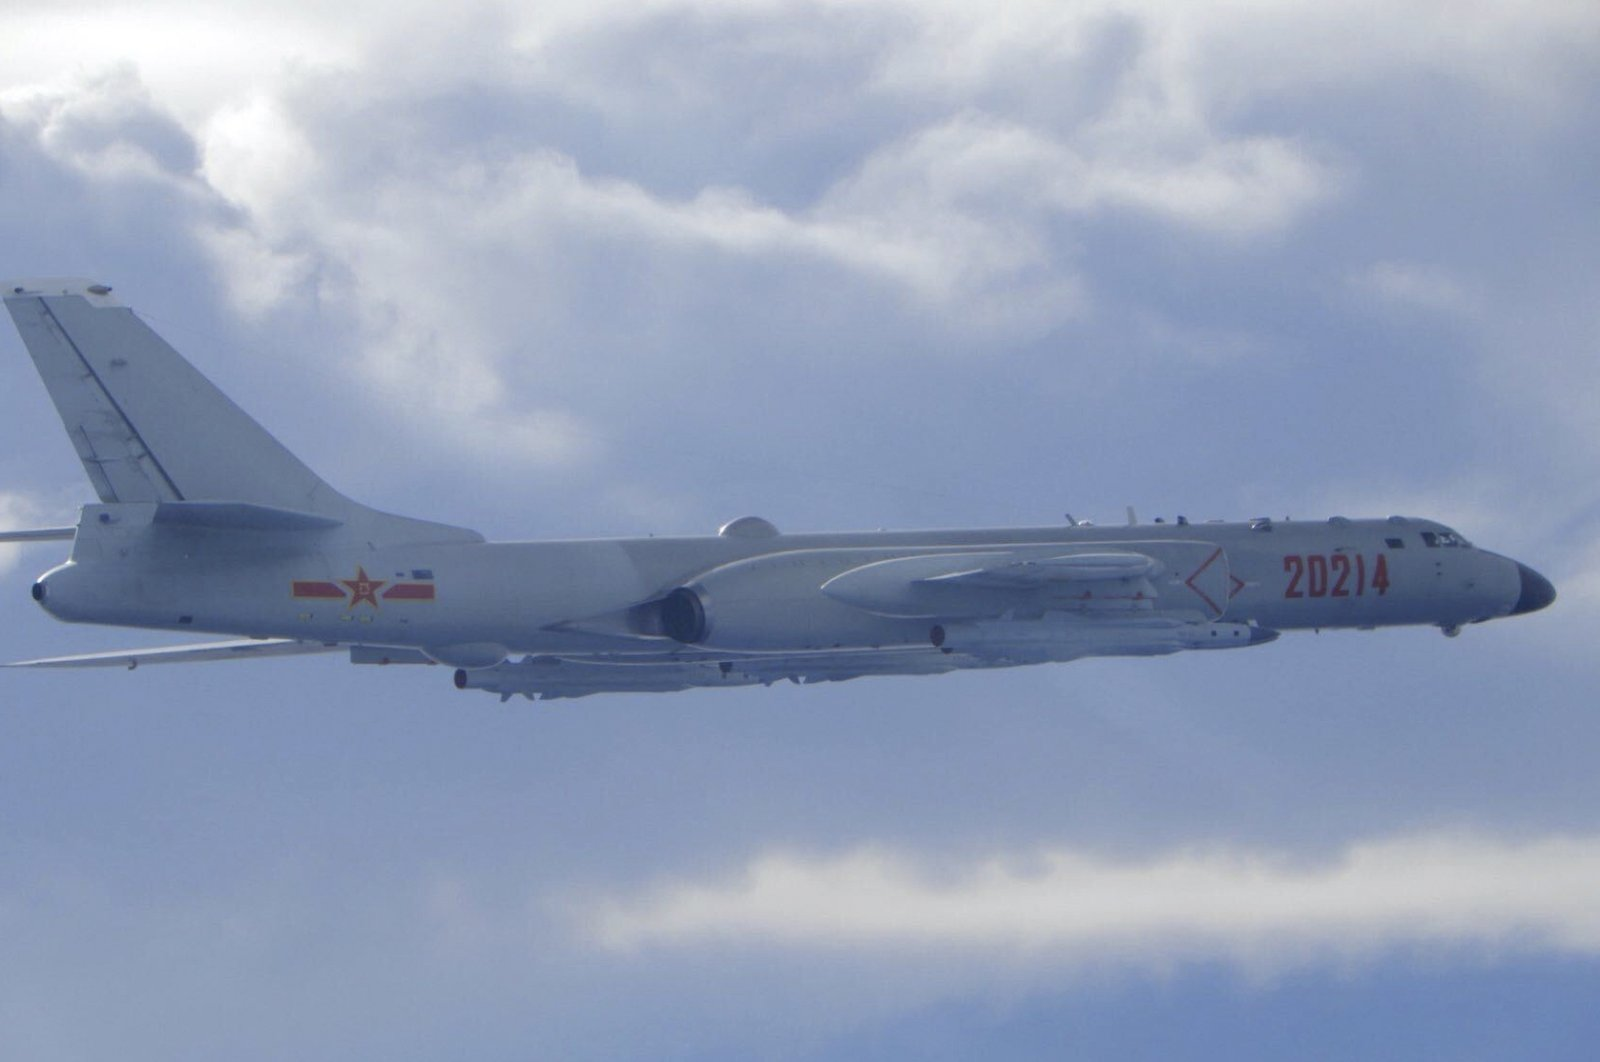 In this photo released by the Taiwan Ministry of National Defense, a Chinese People's Liberation Army H-6 bomber fitted with the YJ-12 anti-ship cruise missile is seen flying near the Taiwan air defense identification zone near Taiwan, Sept. 18, 2020. (Taiwan Ministry of National Defense via AP)